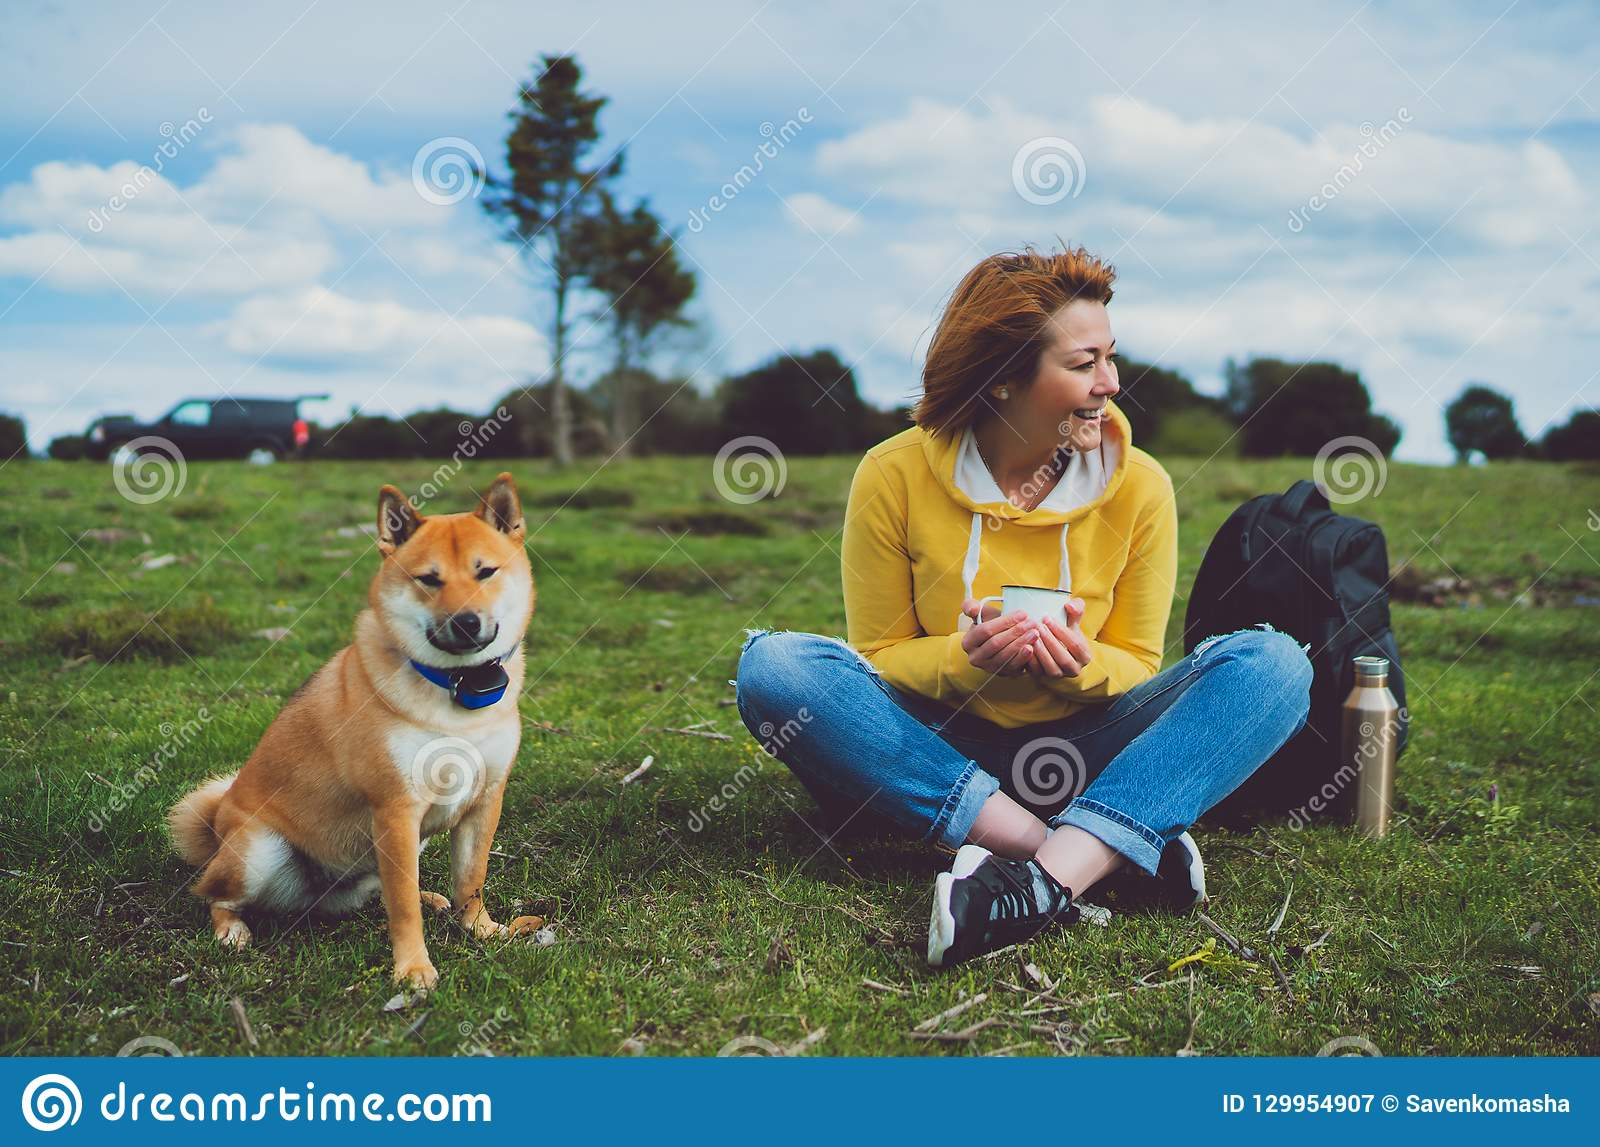 Happy smile girl holding in hands cup drink, red japanese dog shiba inu on green grass in outdoors nature park